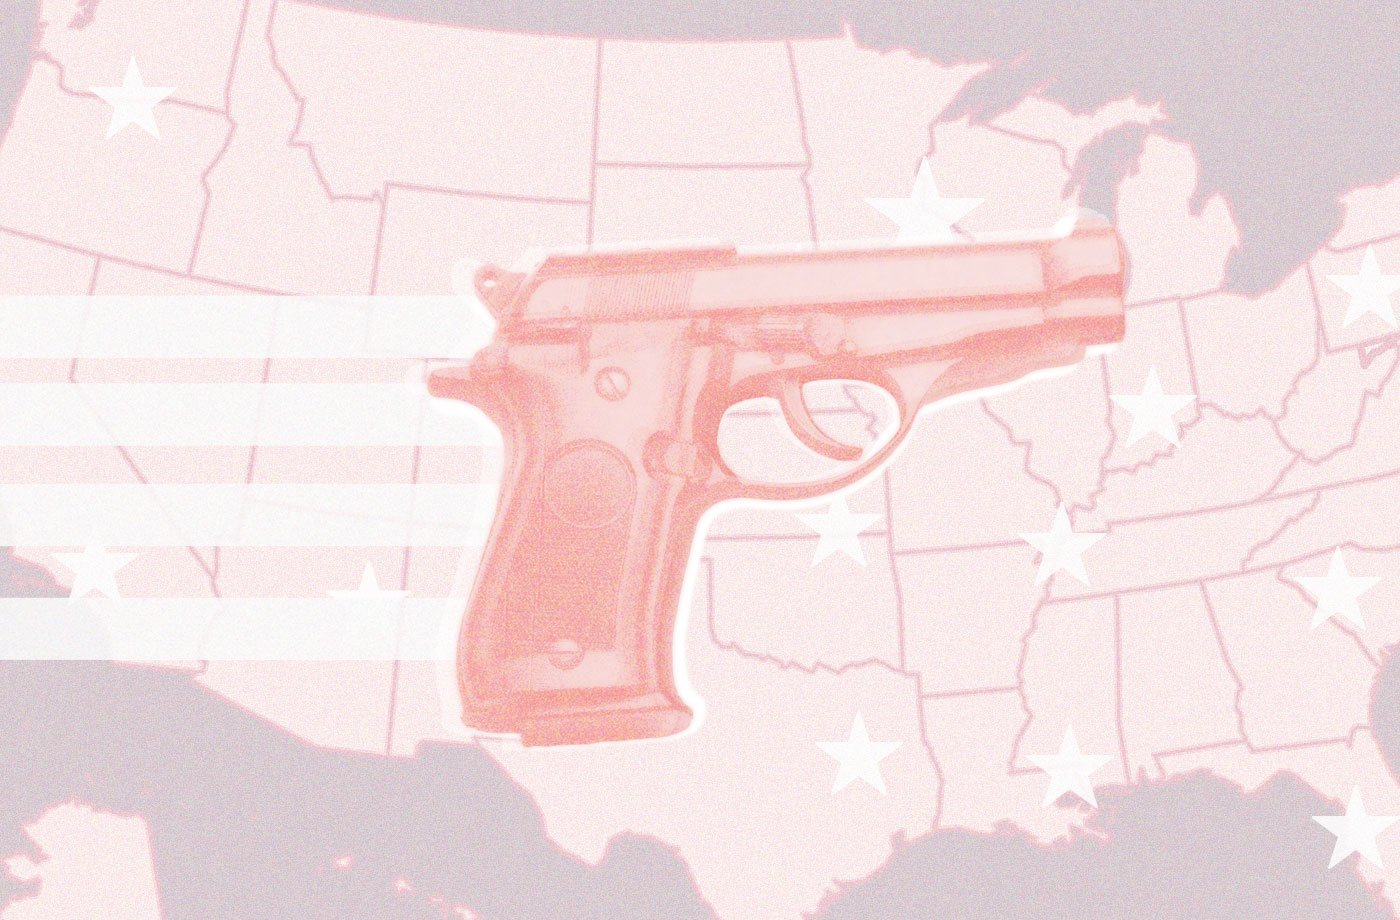 Thumbnail for America's gun violence is a public health crisis, not just an 'unspeakable' tragedy